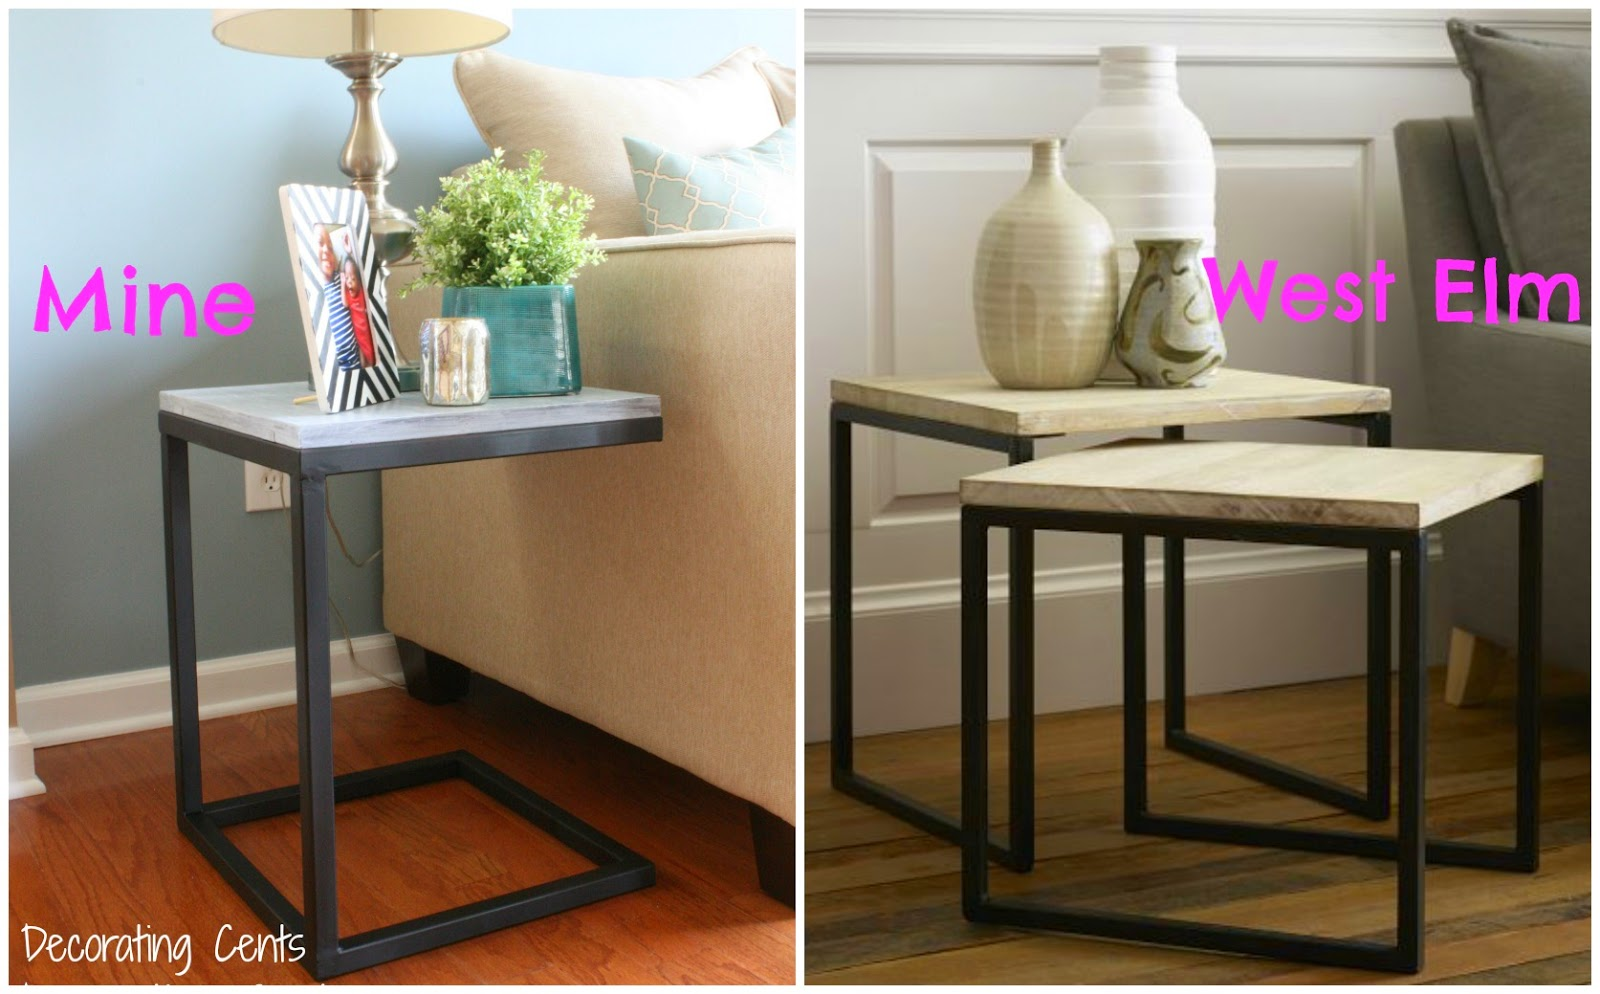 Decorating Cents: West Elm Inspired Side Table